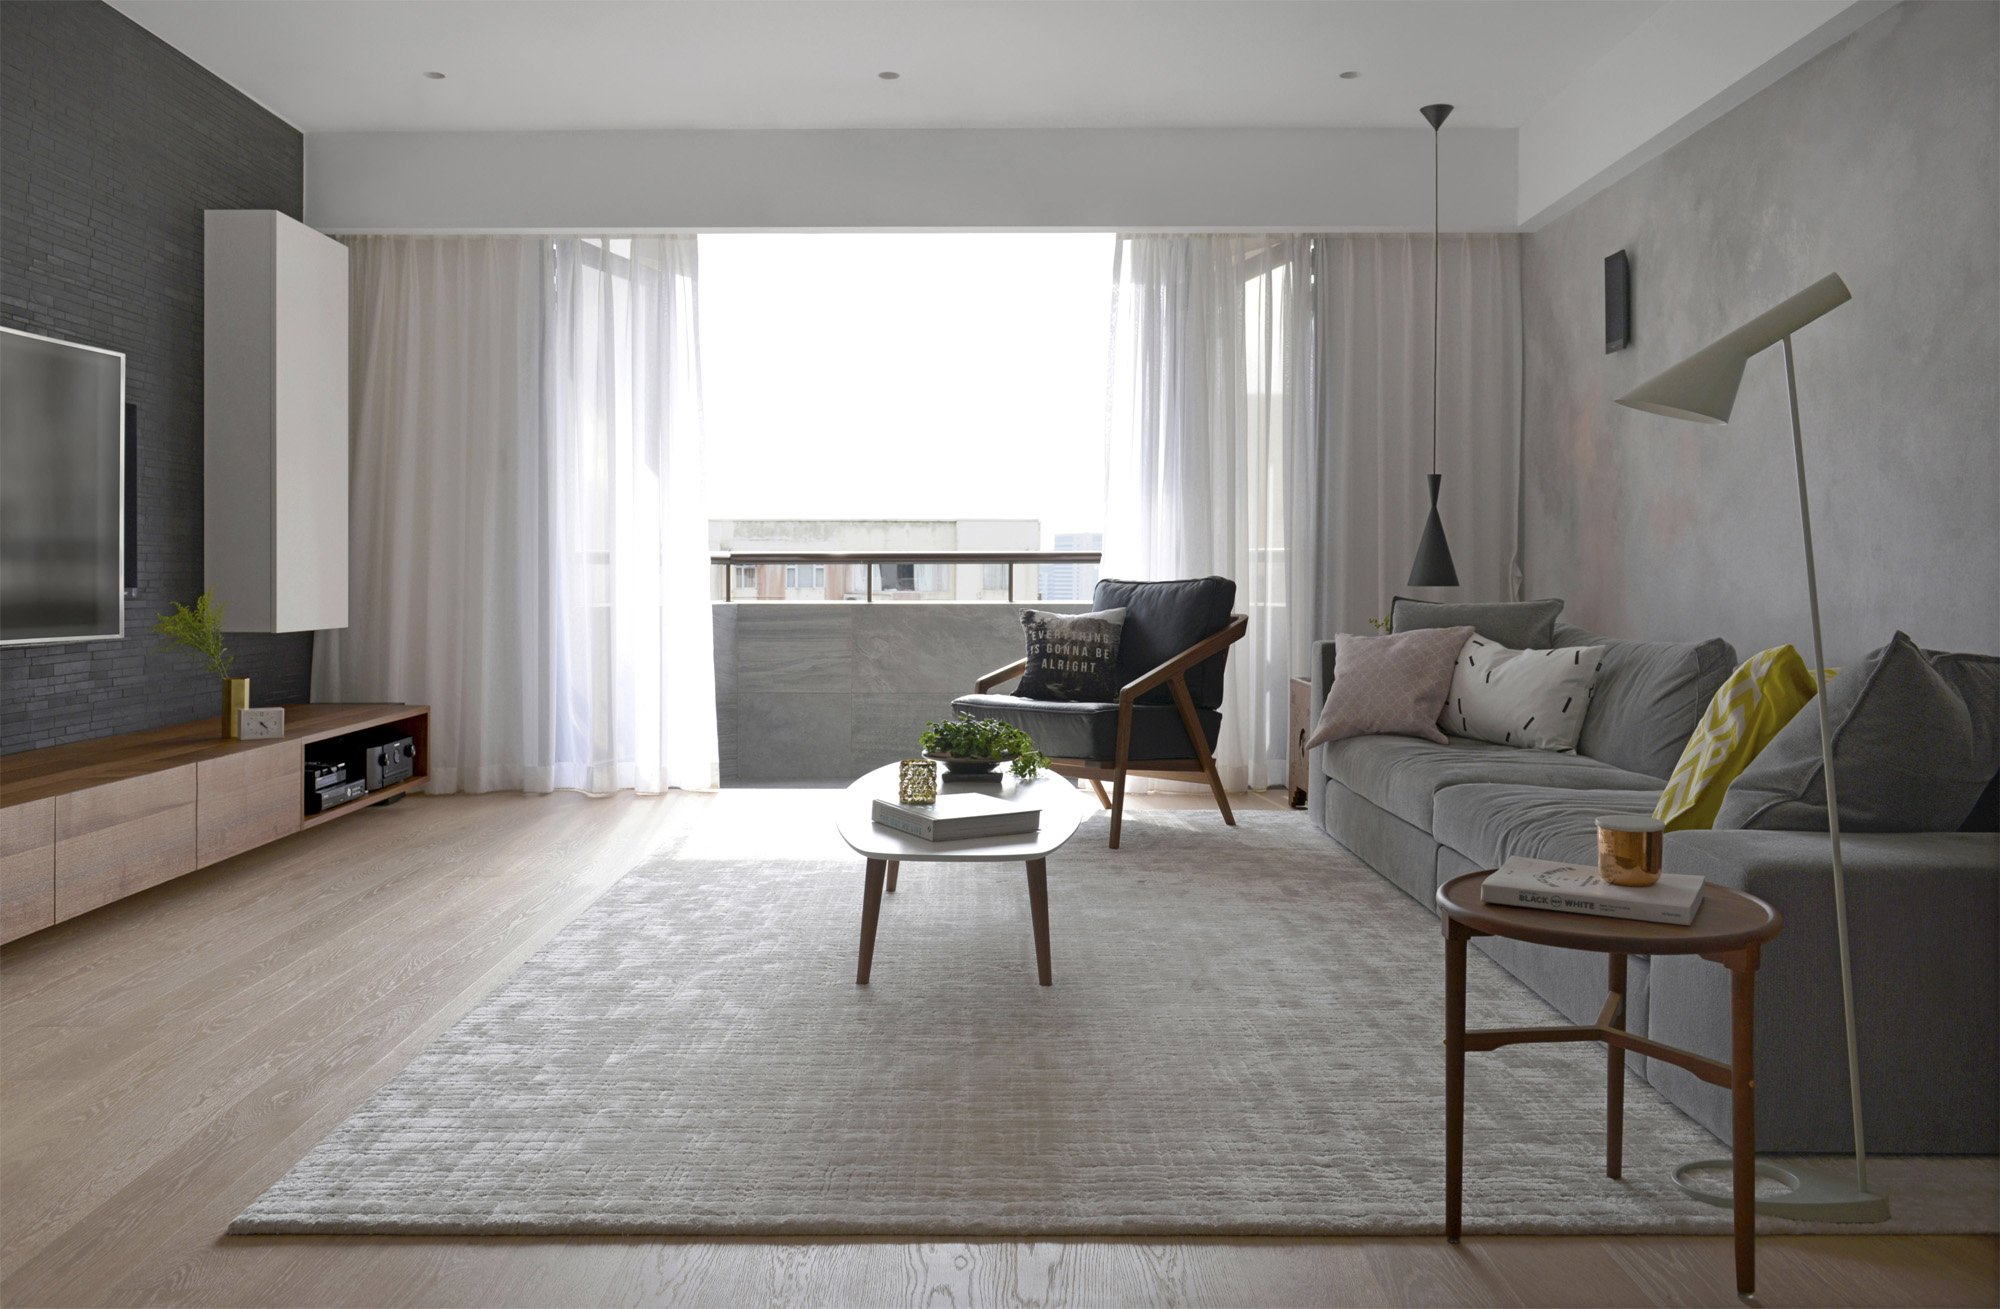 Interior design hong kong home - Living Room The Pale Oak Floor By Hain Was Hk 1 750 Per Square Metre From Equal 23 F 111 Leighton Road Causeway Bay Tel 2881 7066